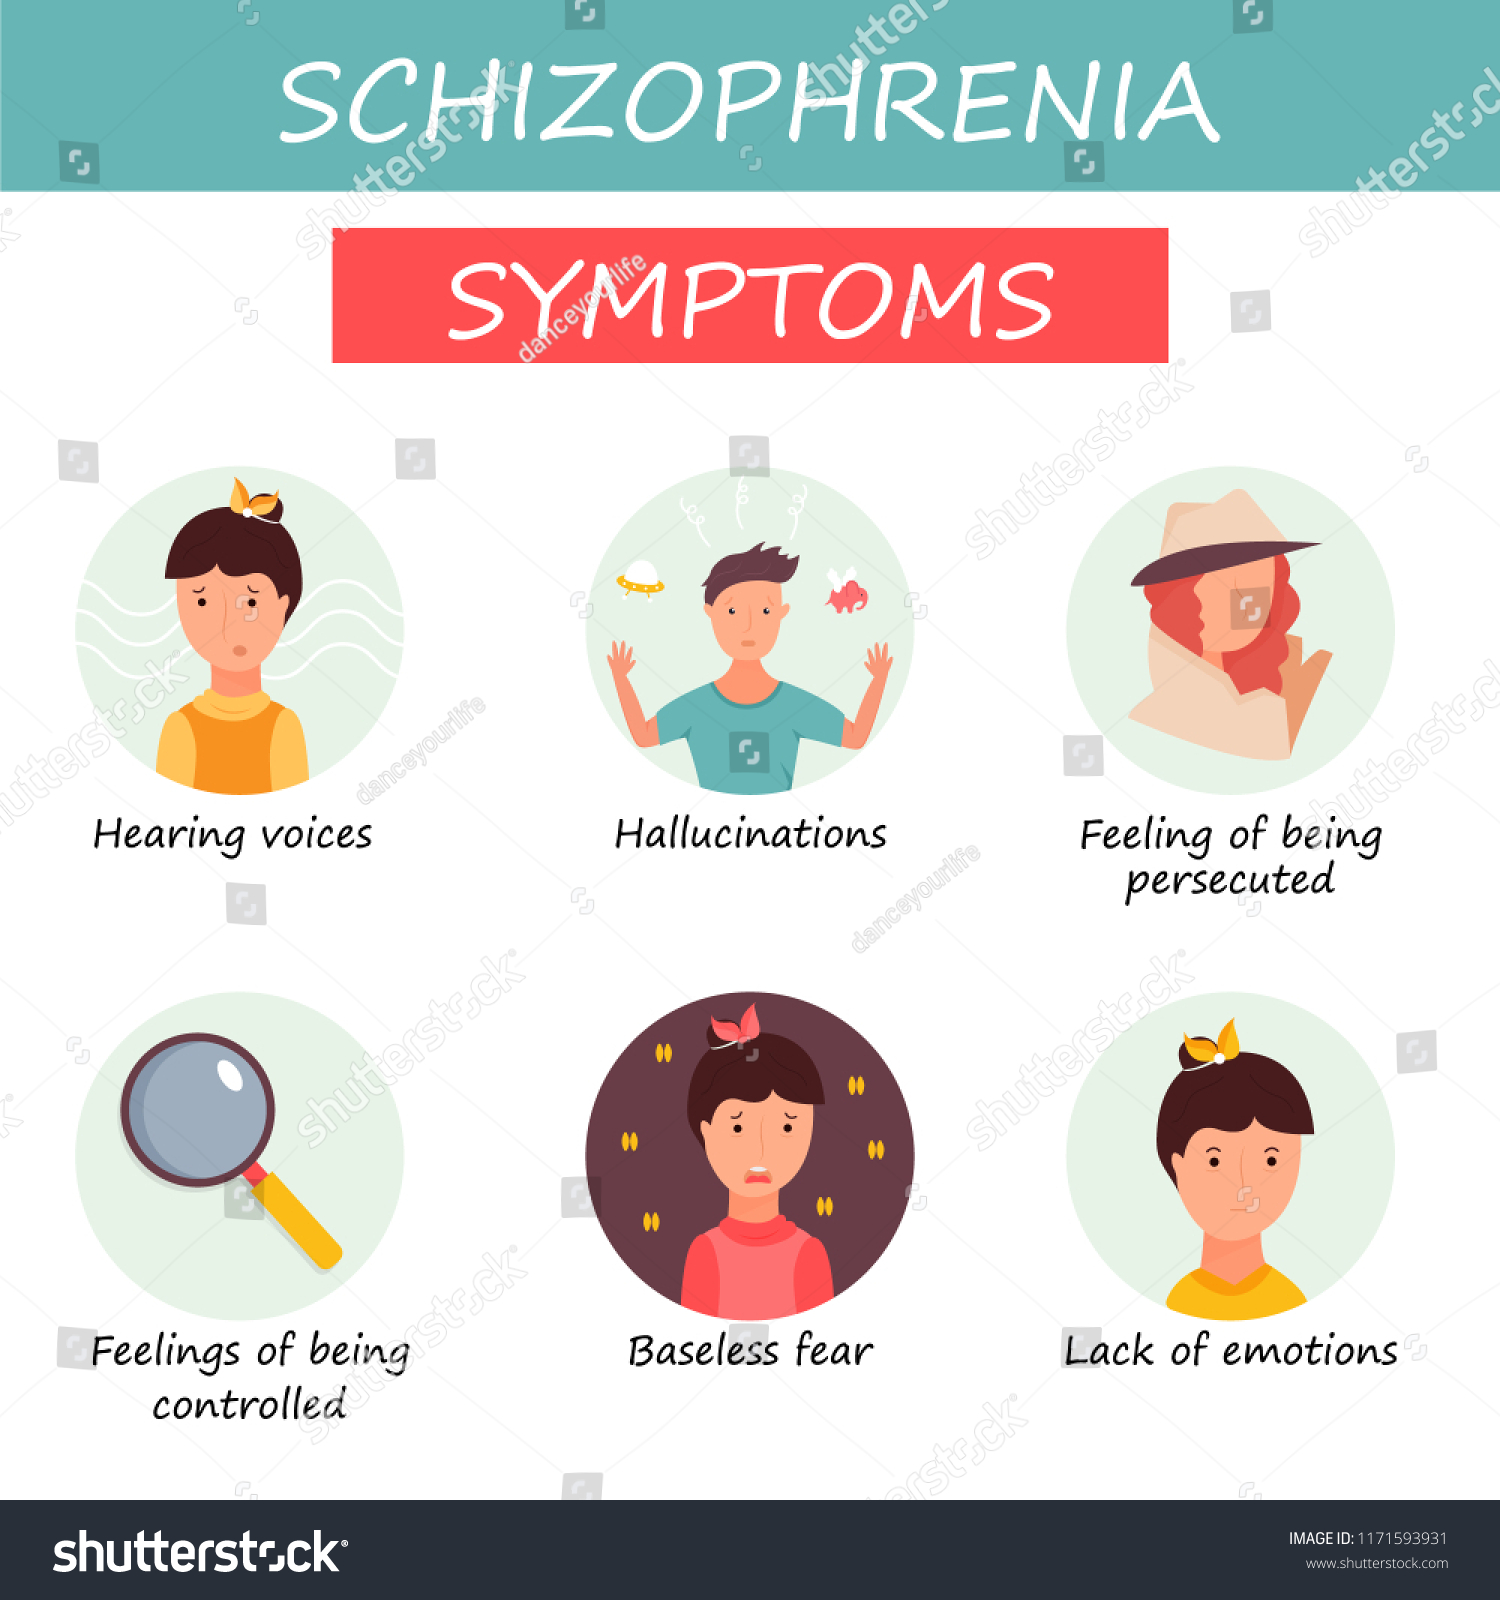 stock-vector-set-of-icons-of-schizophrenia-symptoms-fears-hallucinations-delusion-1171593931.jpg